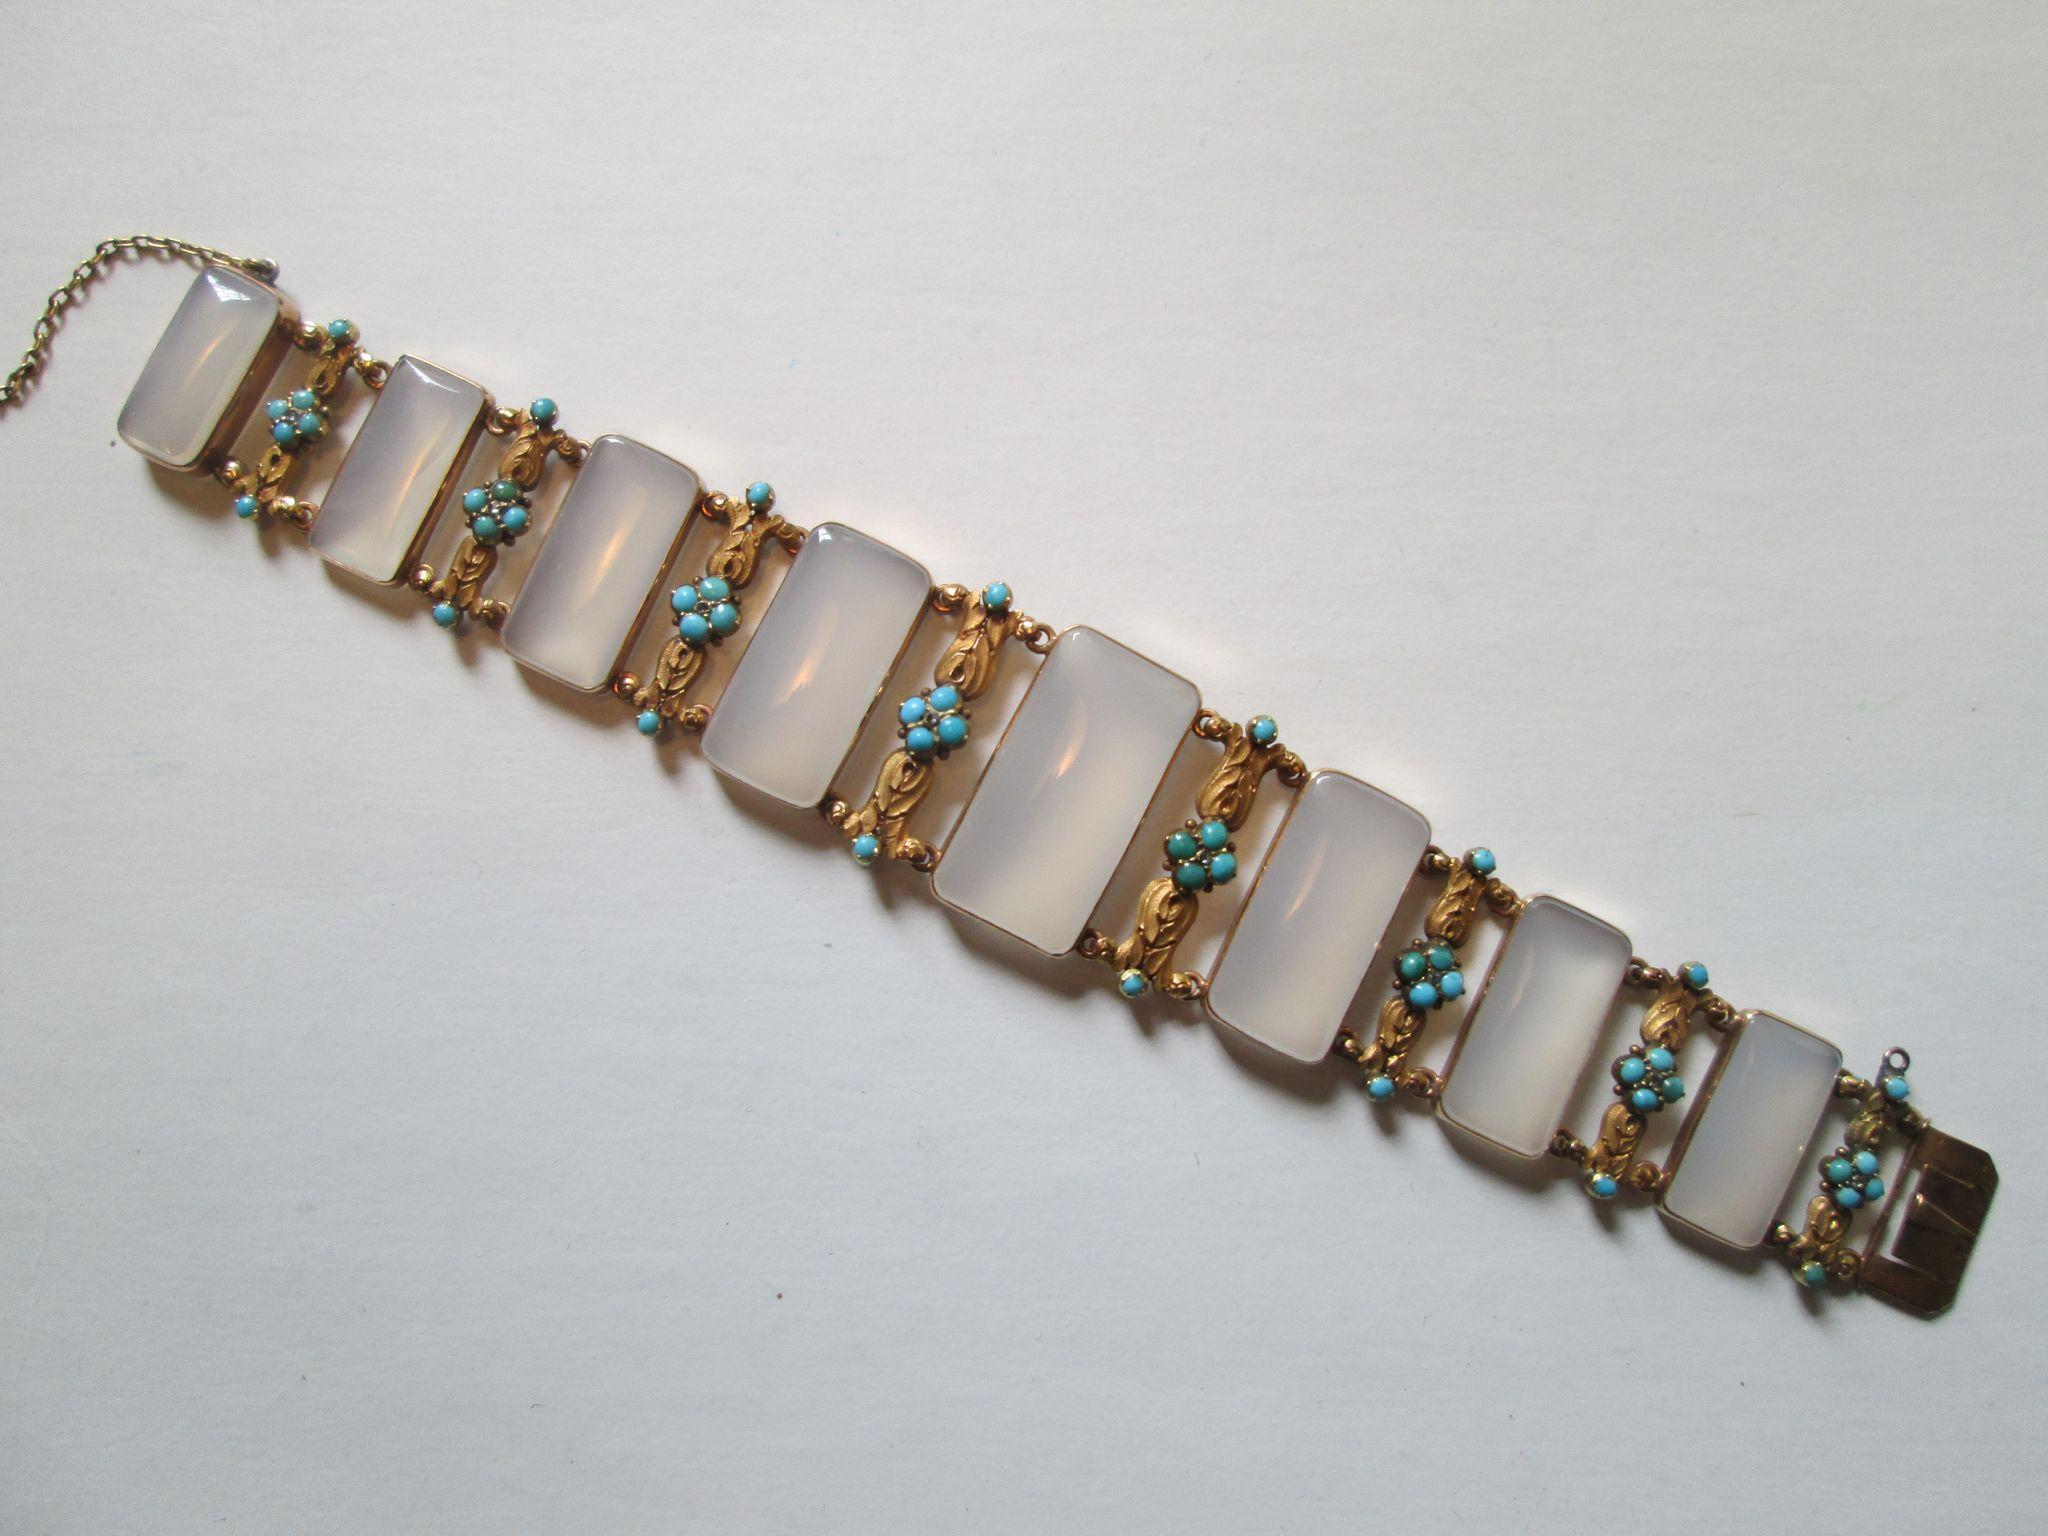 Stunning Georgian 18ct Gold Bracelet with Chalcedony, Turquoise and Diamonds - Circa 1830